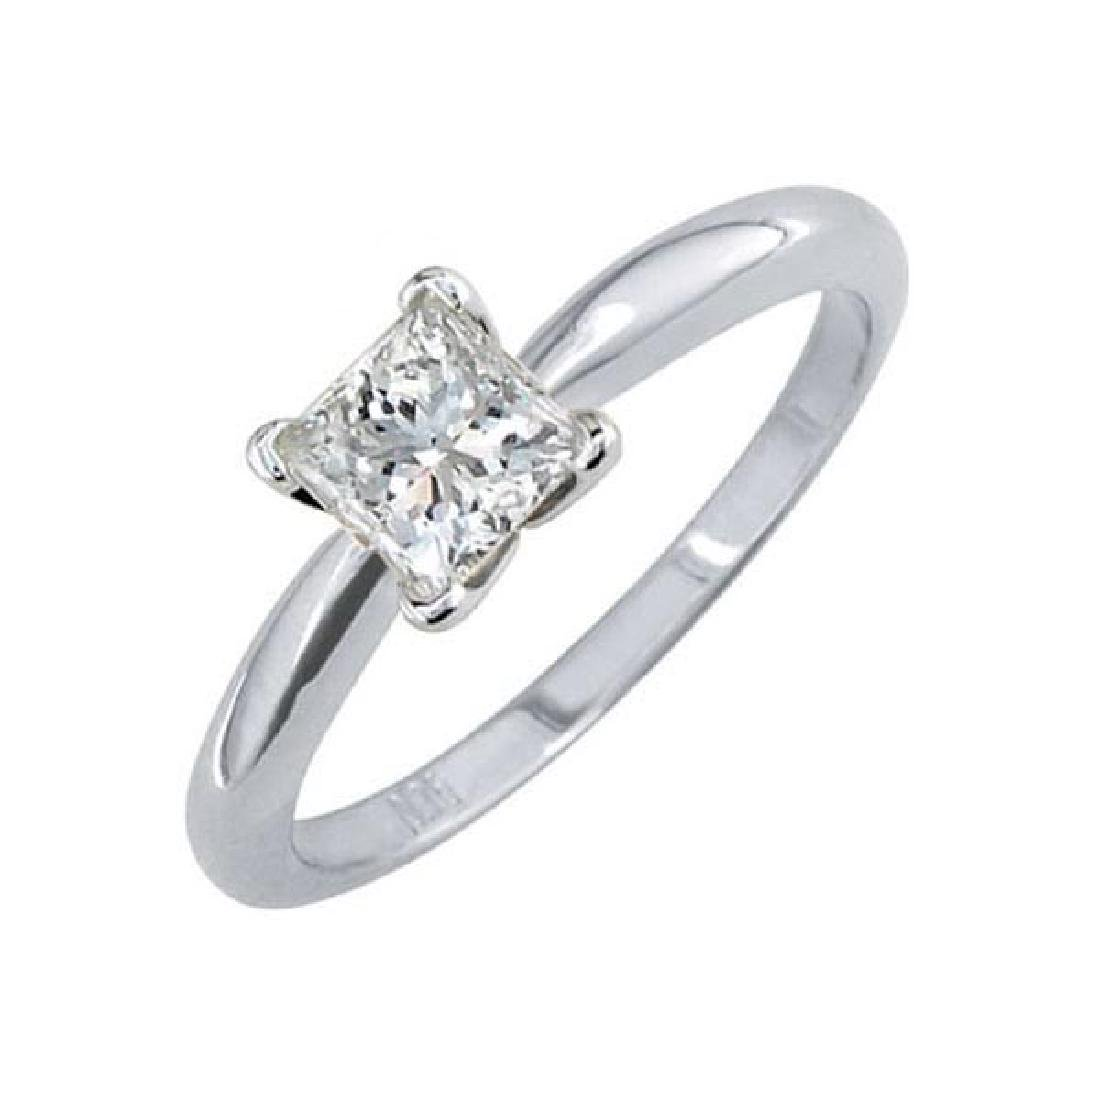 Certified 0.52 CTW Princess Diamond Solitaire 14k Ring